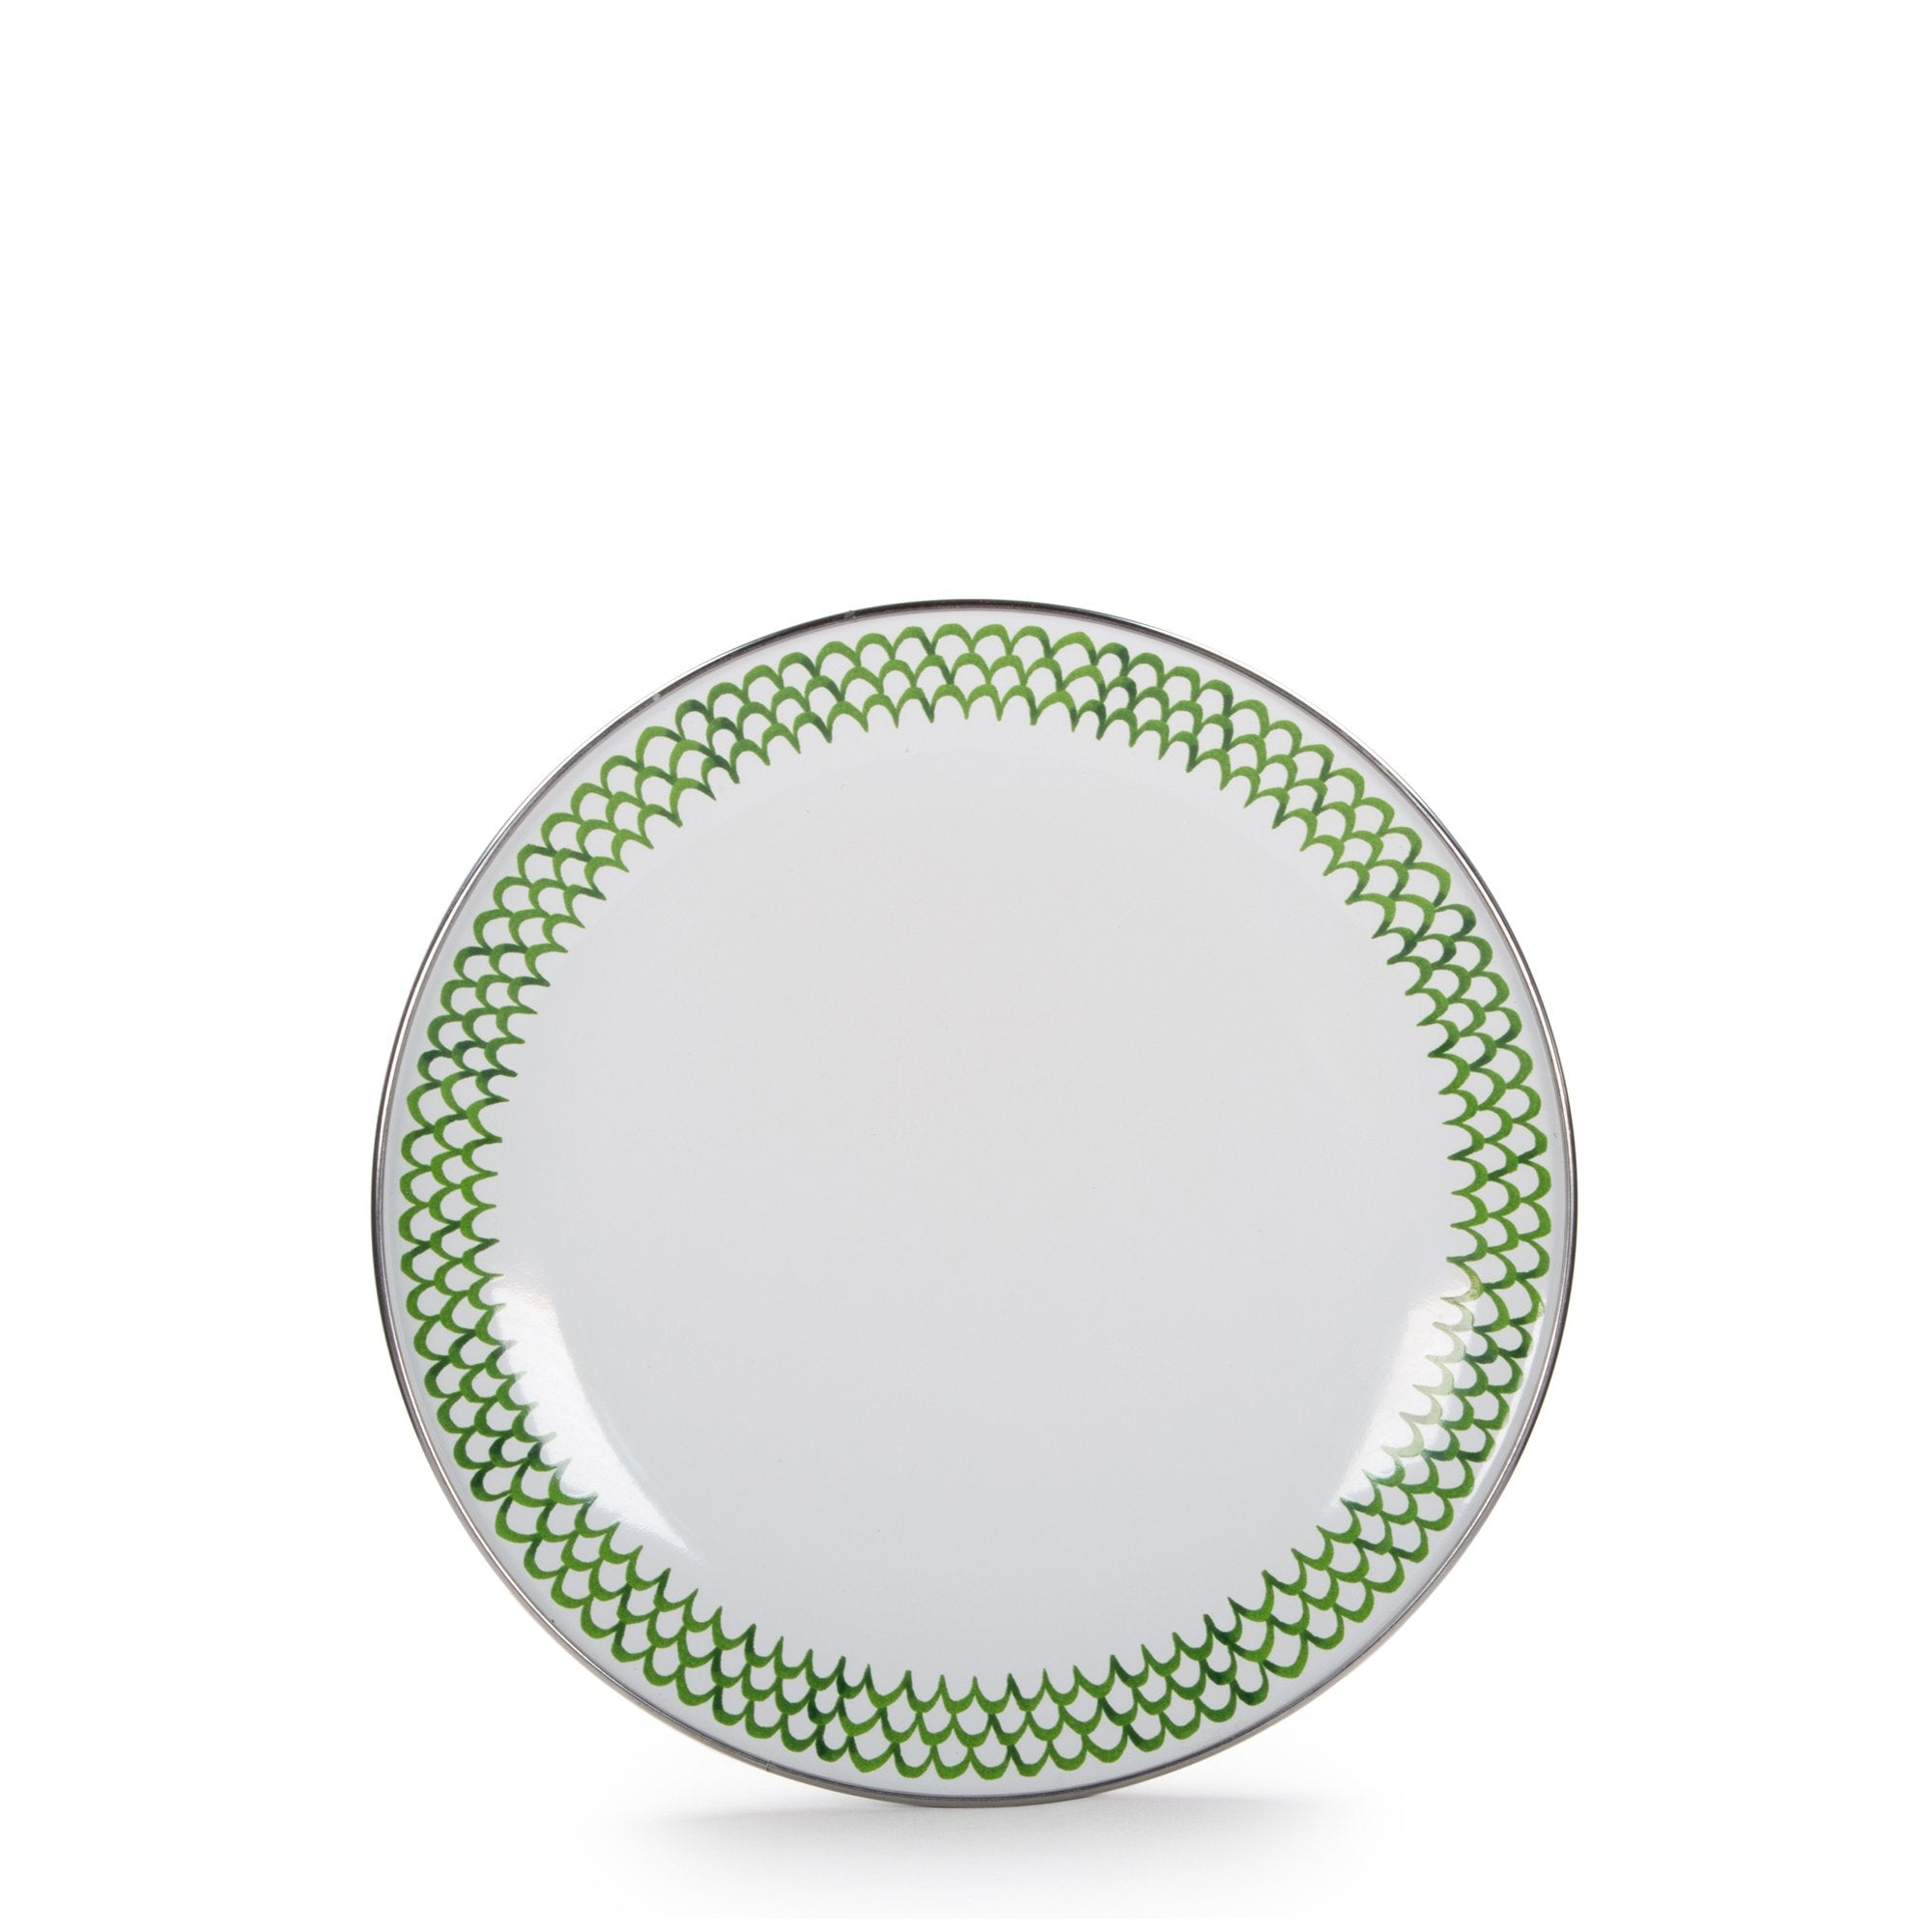 GS69S4 - Set of 4 Green Scallop Sandwich Plates Product 1